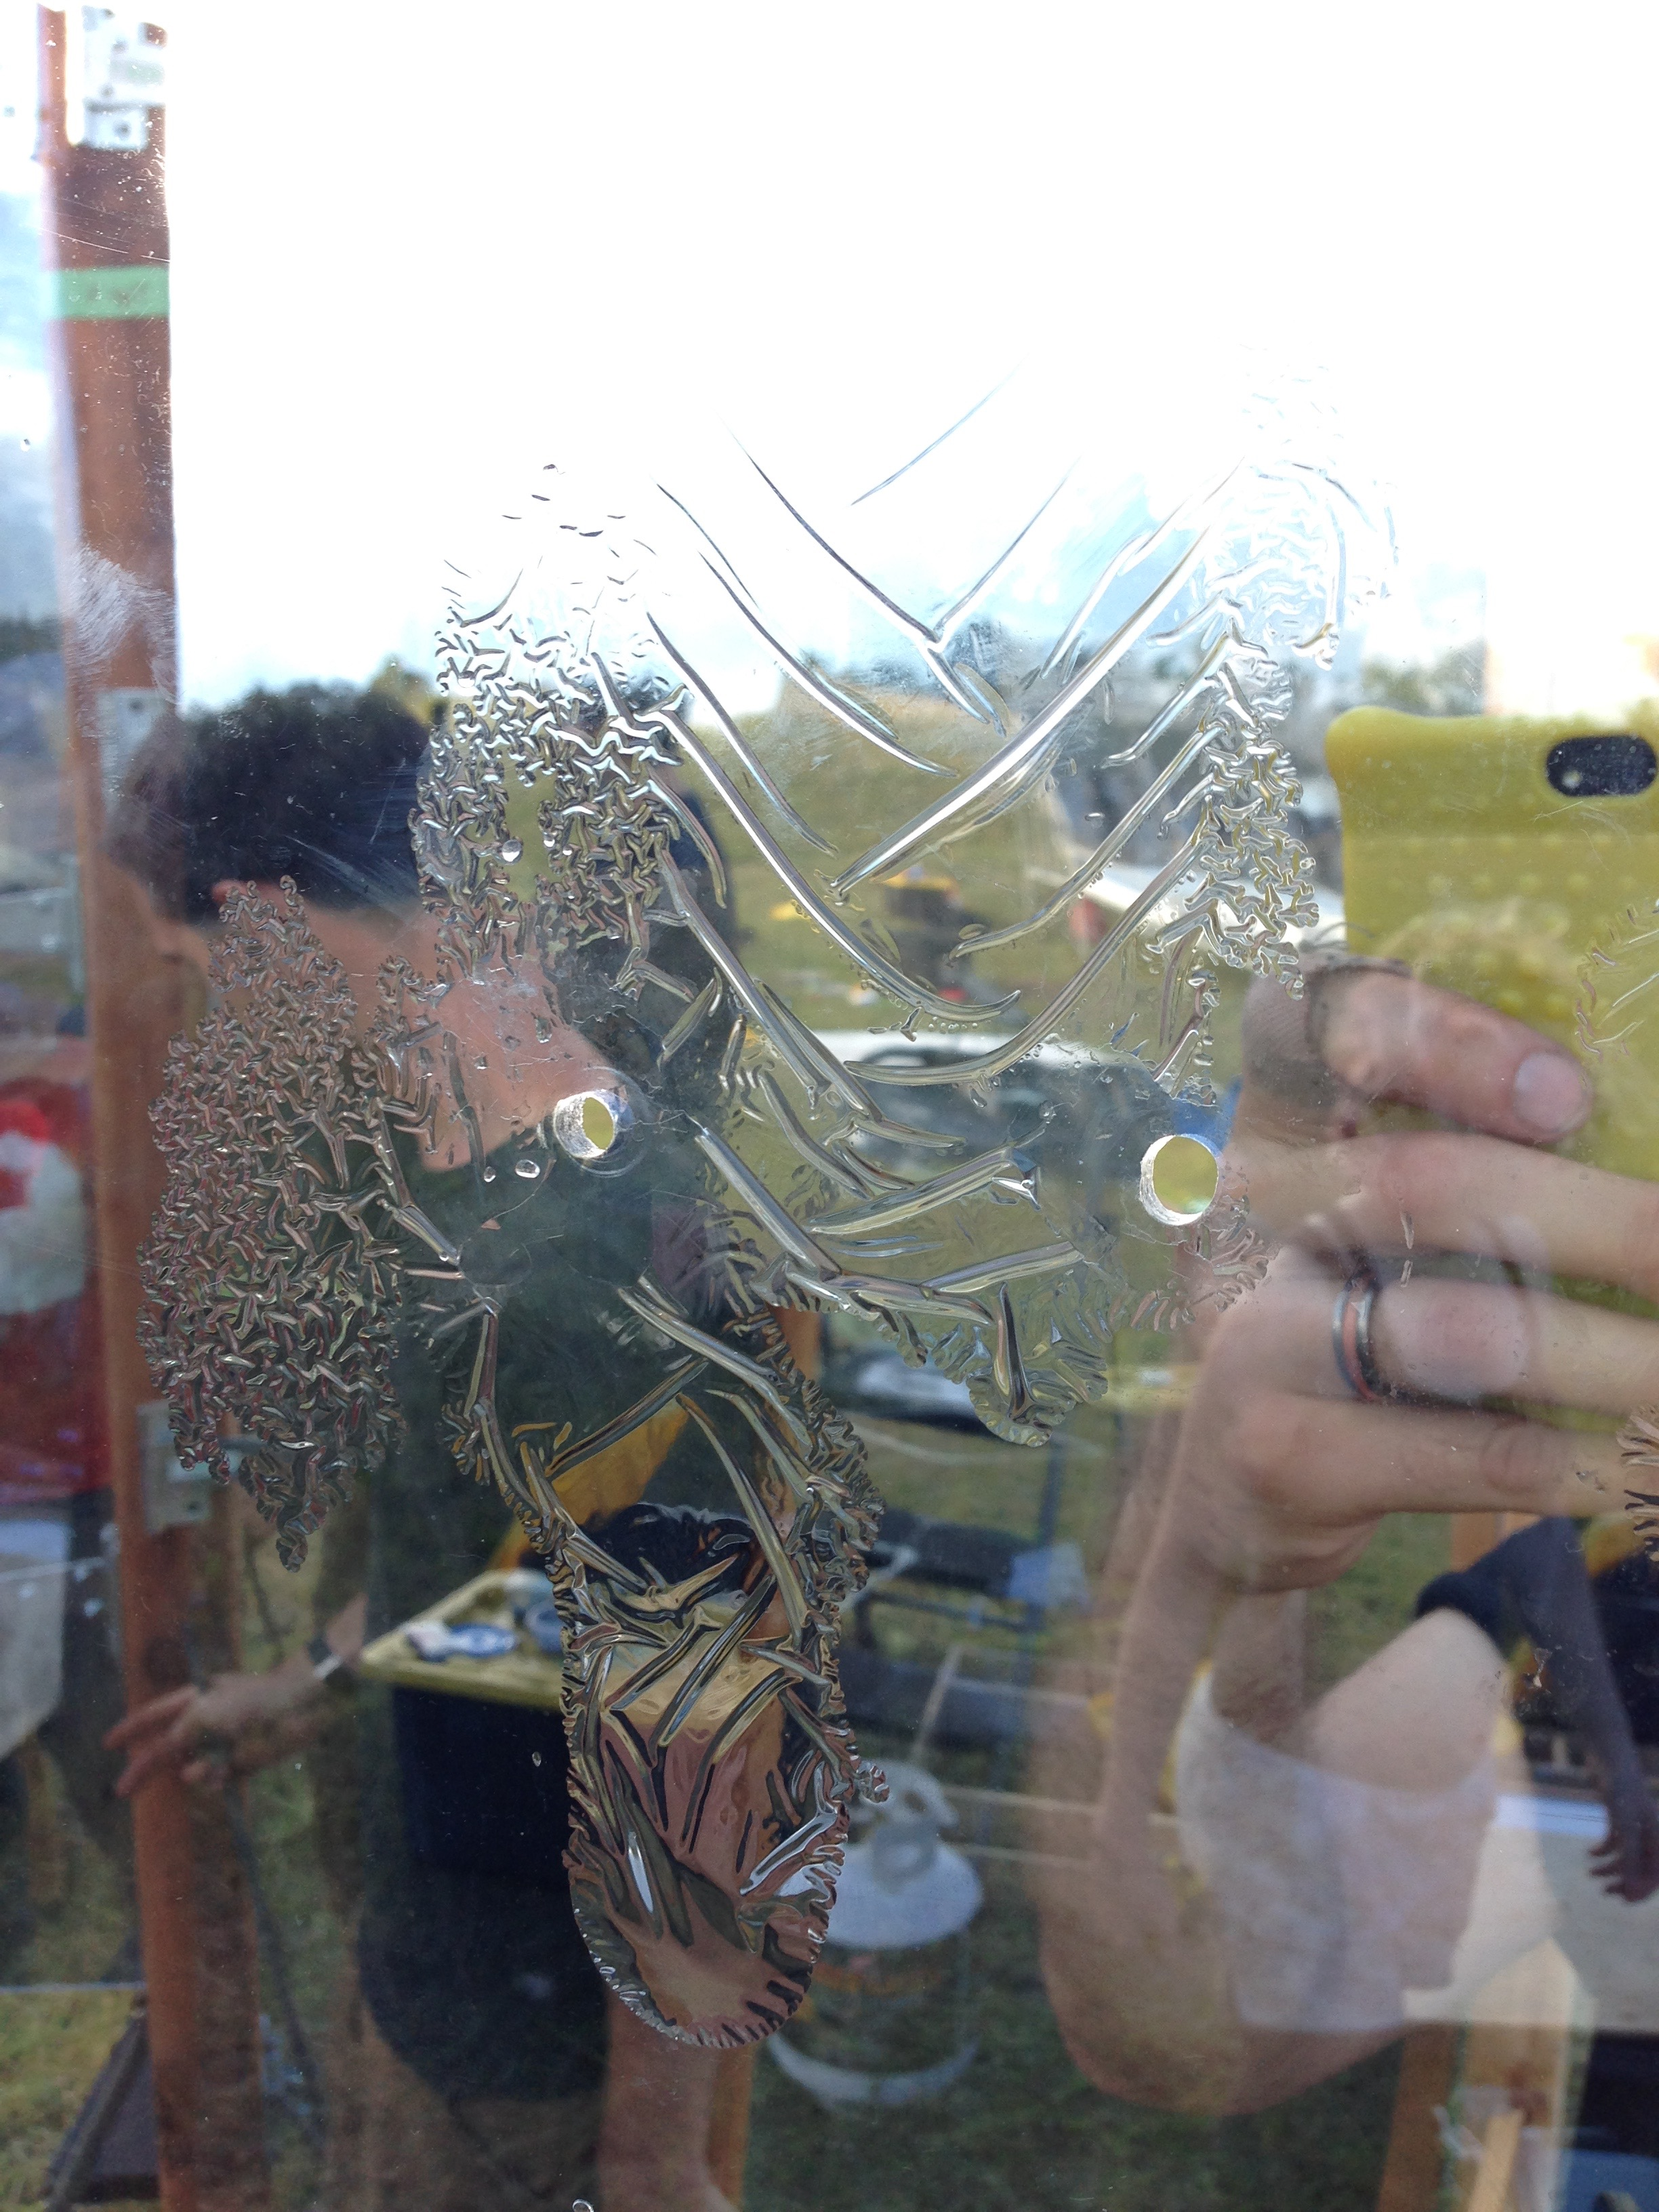 An example of the damage caused to two-way mirrors by water we think through the drilled holes.